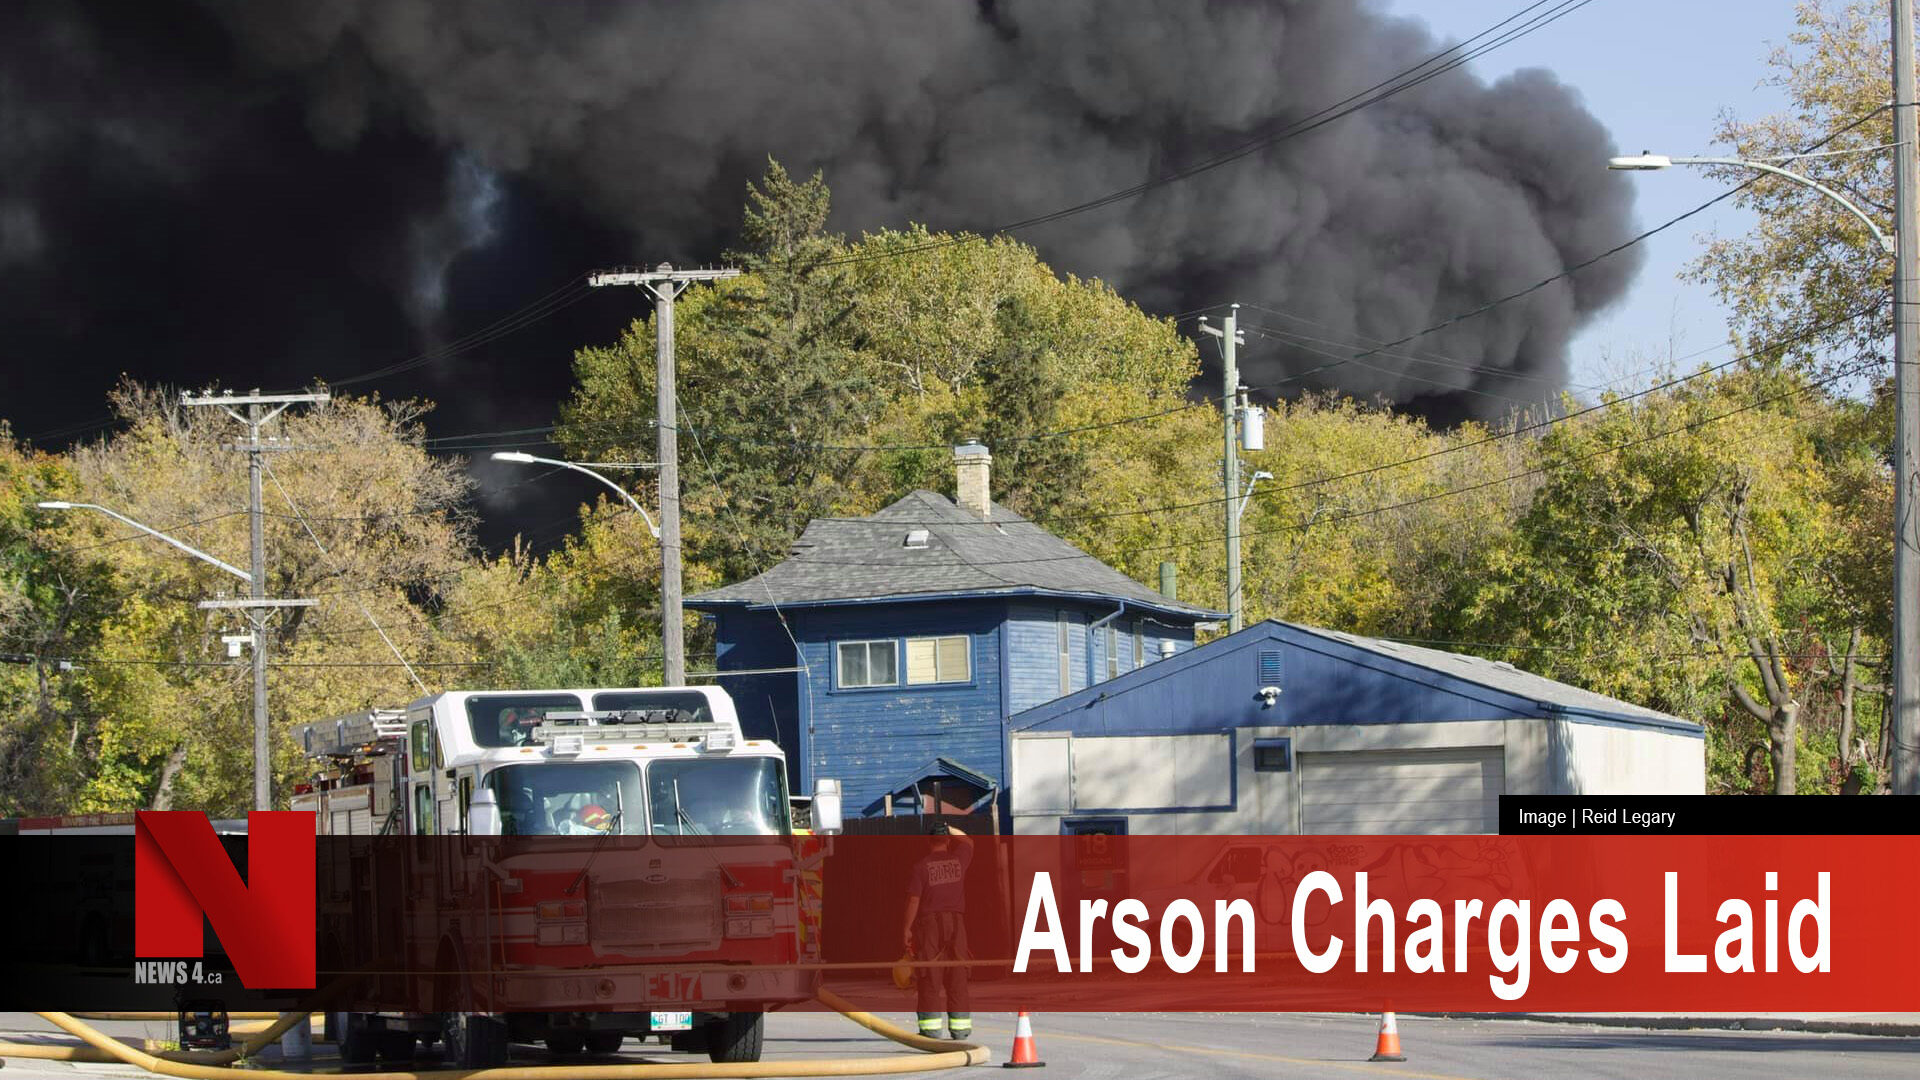 Arson charges laid